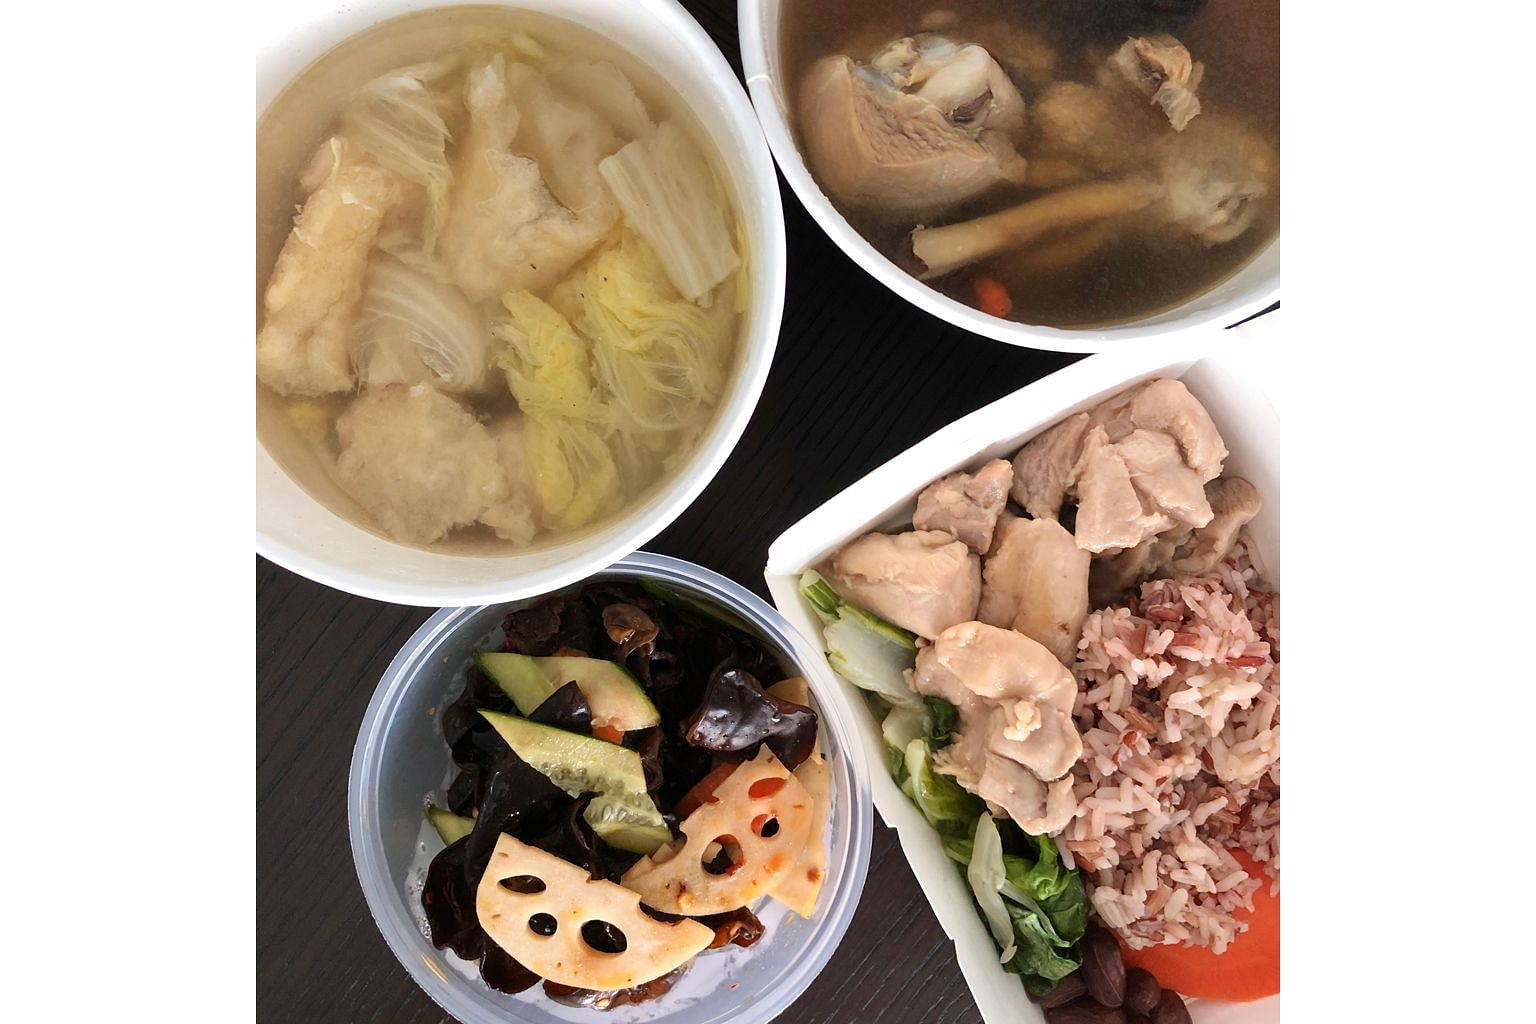 (Clockwise from above left) Chinese Cabbage, Fish Maw And Meatballs Soup; Ginseng Chicken Soup; Rice Wine Chicken With Healthy Mixed Rice, Vegetable, Peanuts; and Oriental Salad - Black Fungus & Lotus Roots from The Herbal Bar.